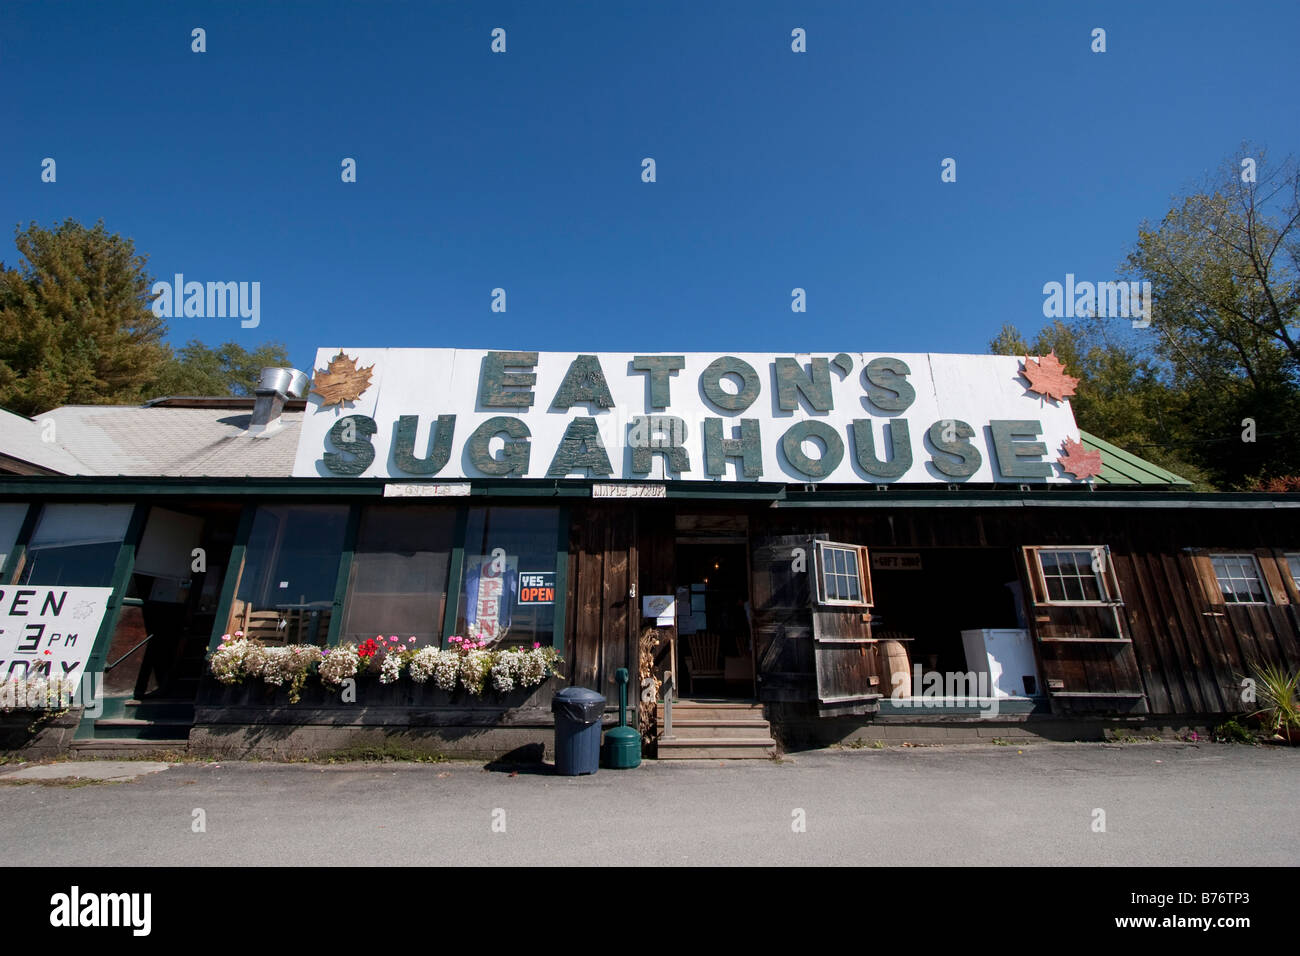 In A Resturant Stock Photos & In A Resturant Stock Images - Alamy